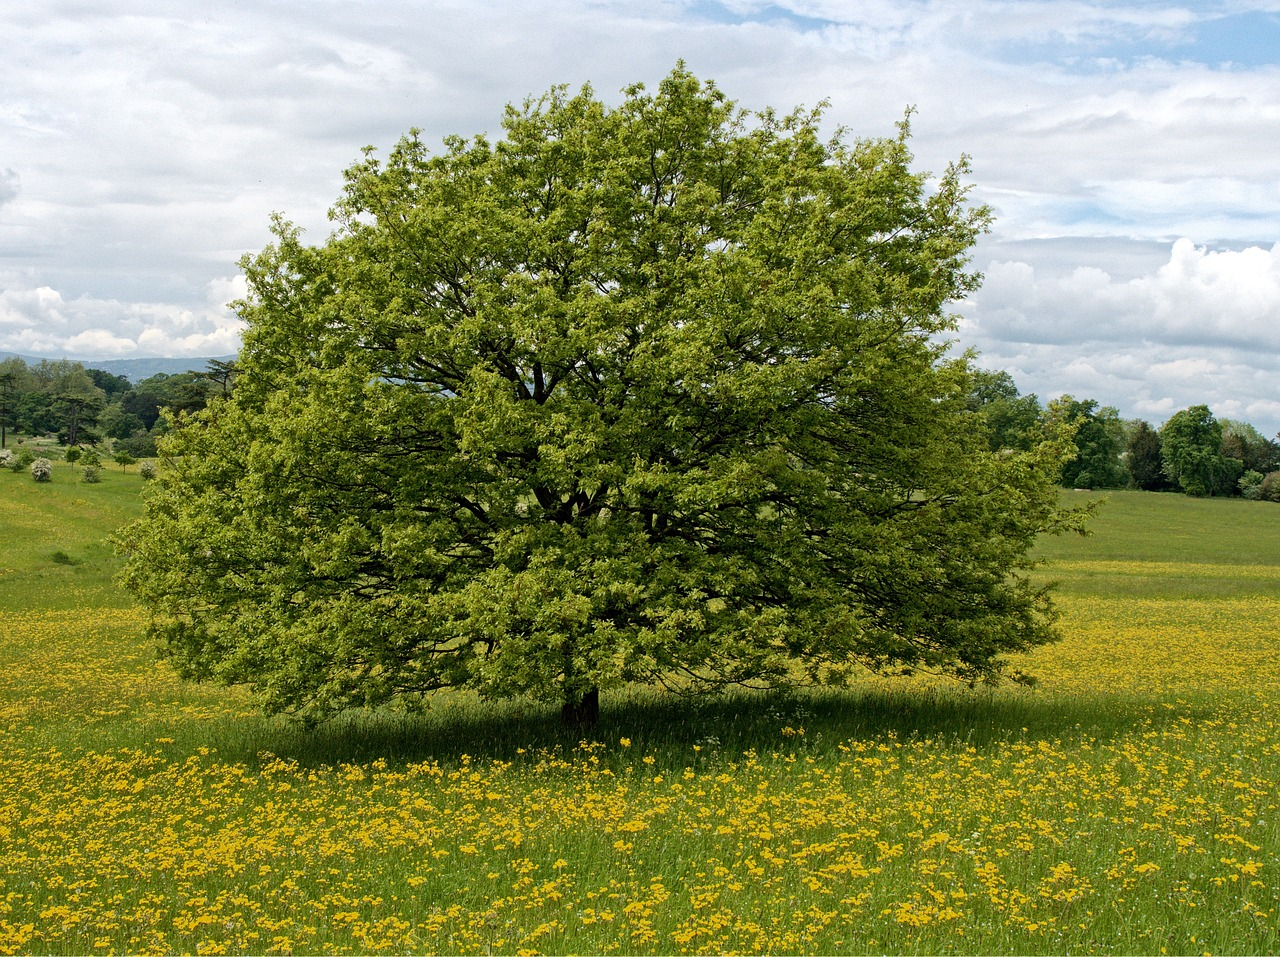 How to Raise a Shade Tree: From Nursery to Maturity